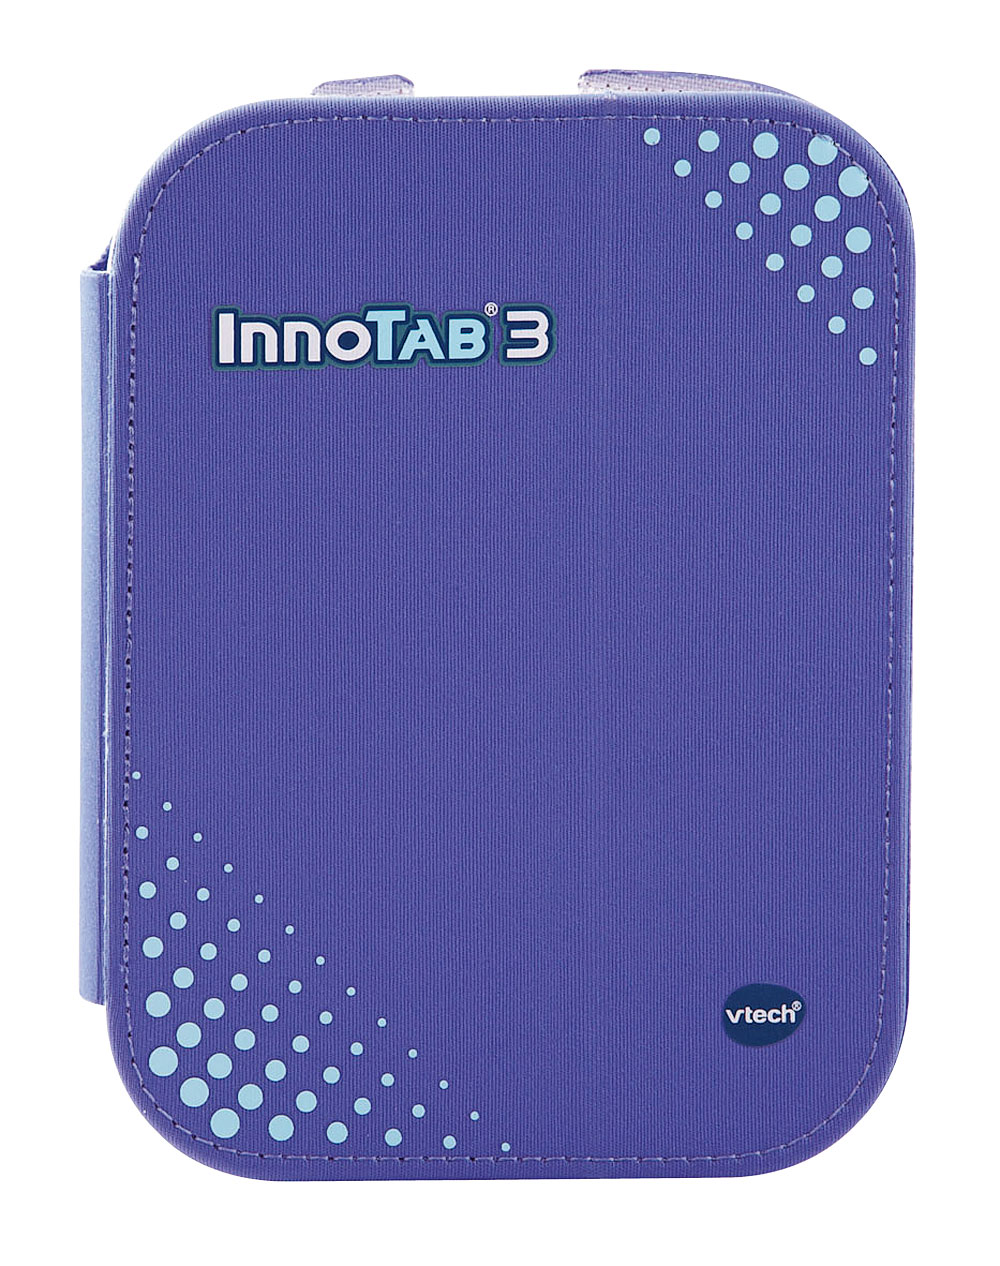 V-tech Innotab 3 Folio Case